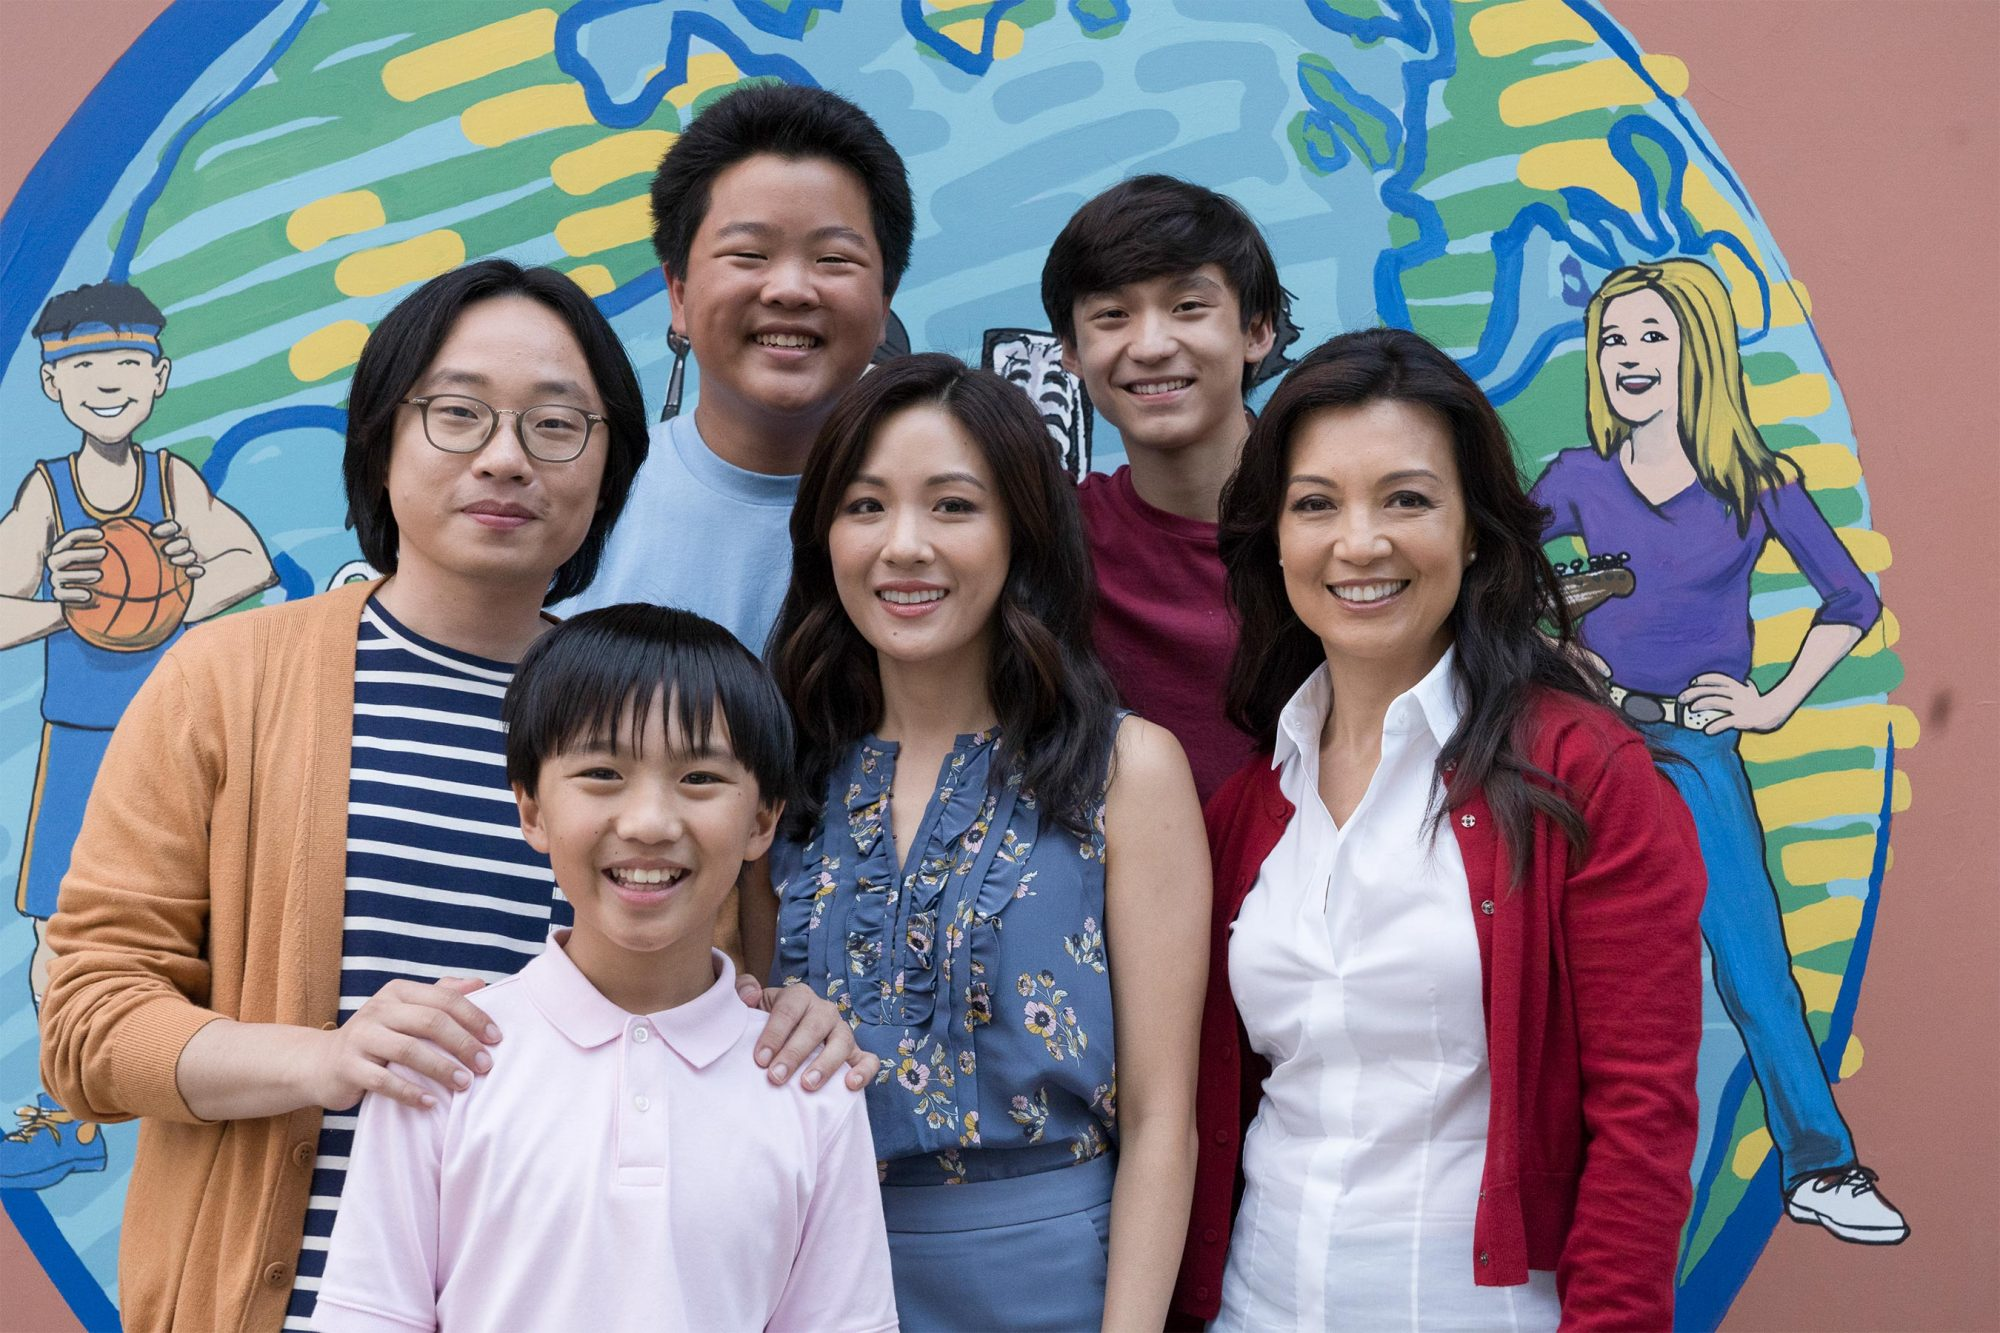 "FRESH OFF THE BOAT - ""Mo' Chinese Mo' Problems"" - Jessica and Lewis are thrilled beyond belief when they discover that a Chinese family - Elaine (Ming-Na Wen), Julius (Reggie Lee) and son, Horace (Jimmy O. Yang) - have moved into the neighborhood. Jessica immediately bonds with Elaine, who helps her solve an issue with the HOA, and Louis decides to introduce Julius to Marvin and hang out together. Meanwhile, when Evan goes door-to-door collecting information for the census bureau, Eddie and Emery come up with a plan to impersonate being census takers in order to find out when the owners of a pool are out of the house so they can sneak over and use it, on ""Fresh Off the Boat,"" FRIDAY, NOV. 9 (8:00-8:30 p.m. EST), as part of the new TGIF programming block on The ABC Television Network. (Byron Cohen via Getty Images) JIMMY O. YANG, IAN CHEN, HUDSON YANG, CONSTANCE WU, FORREST WHEELER, MING-NA WEN"